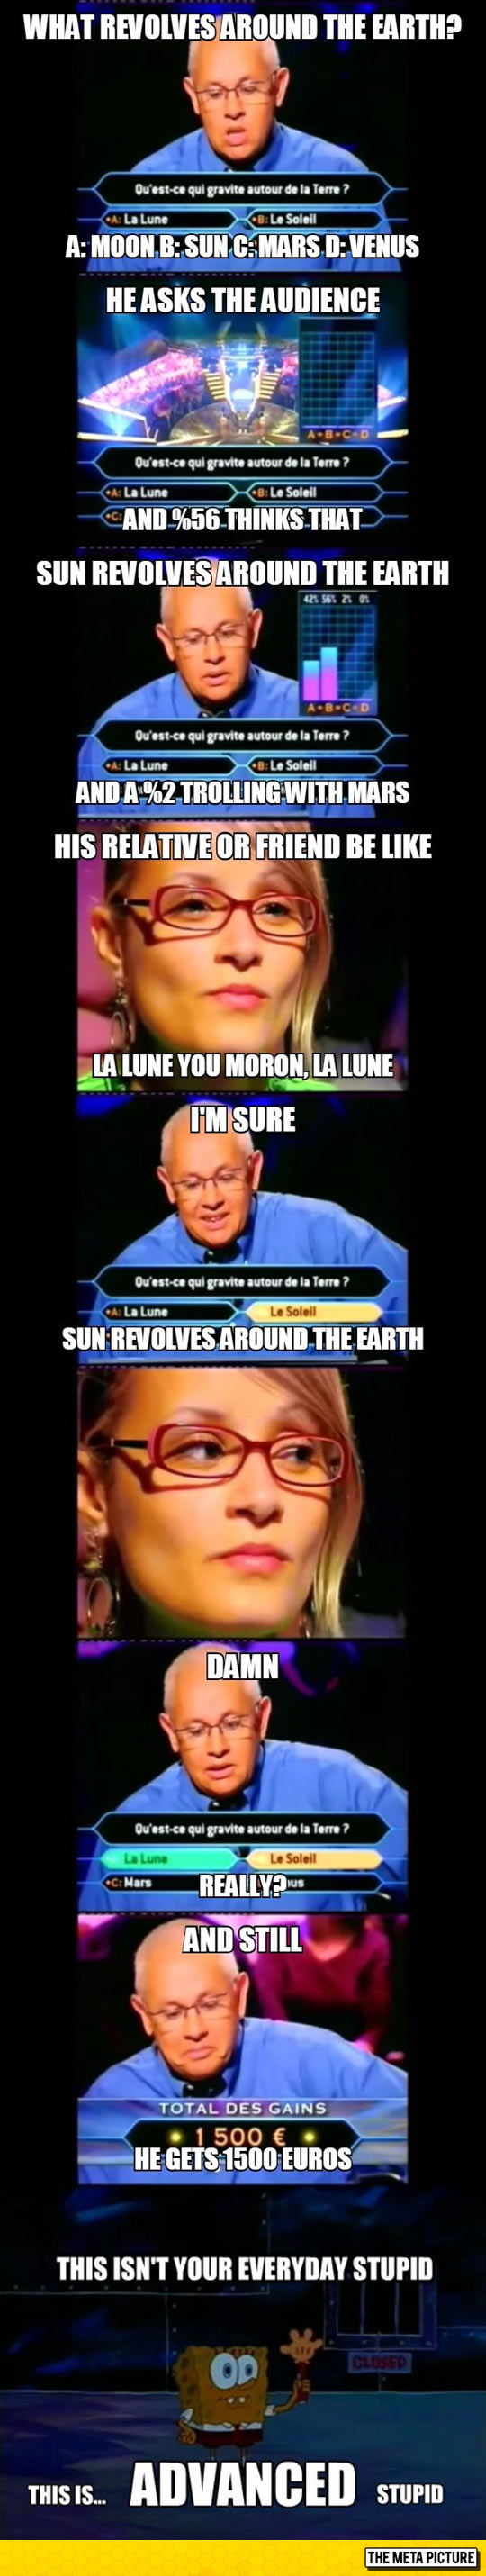 A Whole New Level of Stupidity on Who Wants to Be a Millionaire?